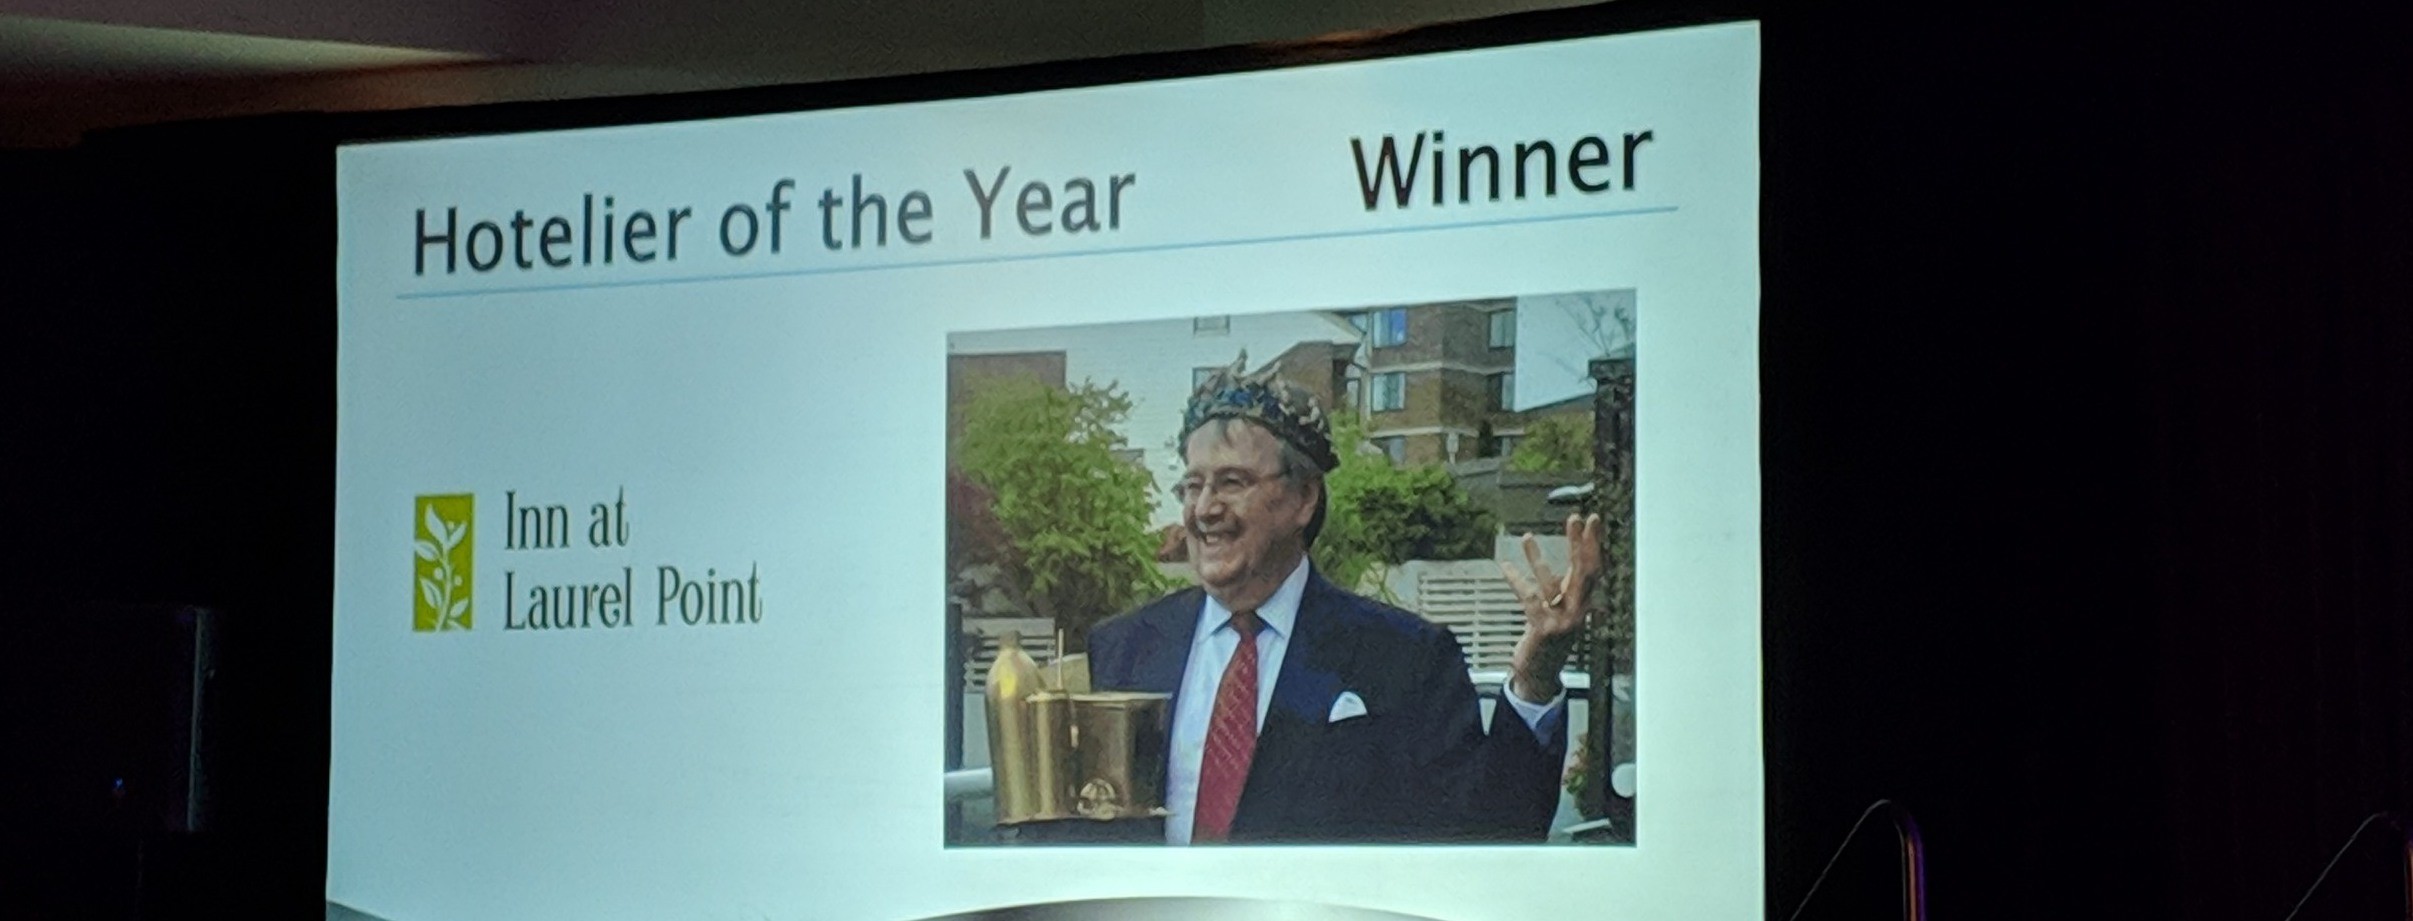 British Columbia Hotel Association recognizes Ian Powell, Managing Director, Inn at Laurel Point & Paul's Motor Inn as hotelier of the year.